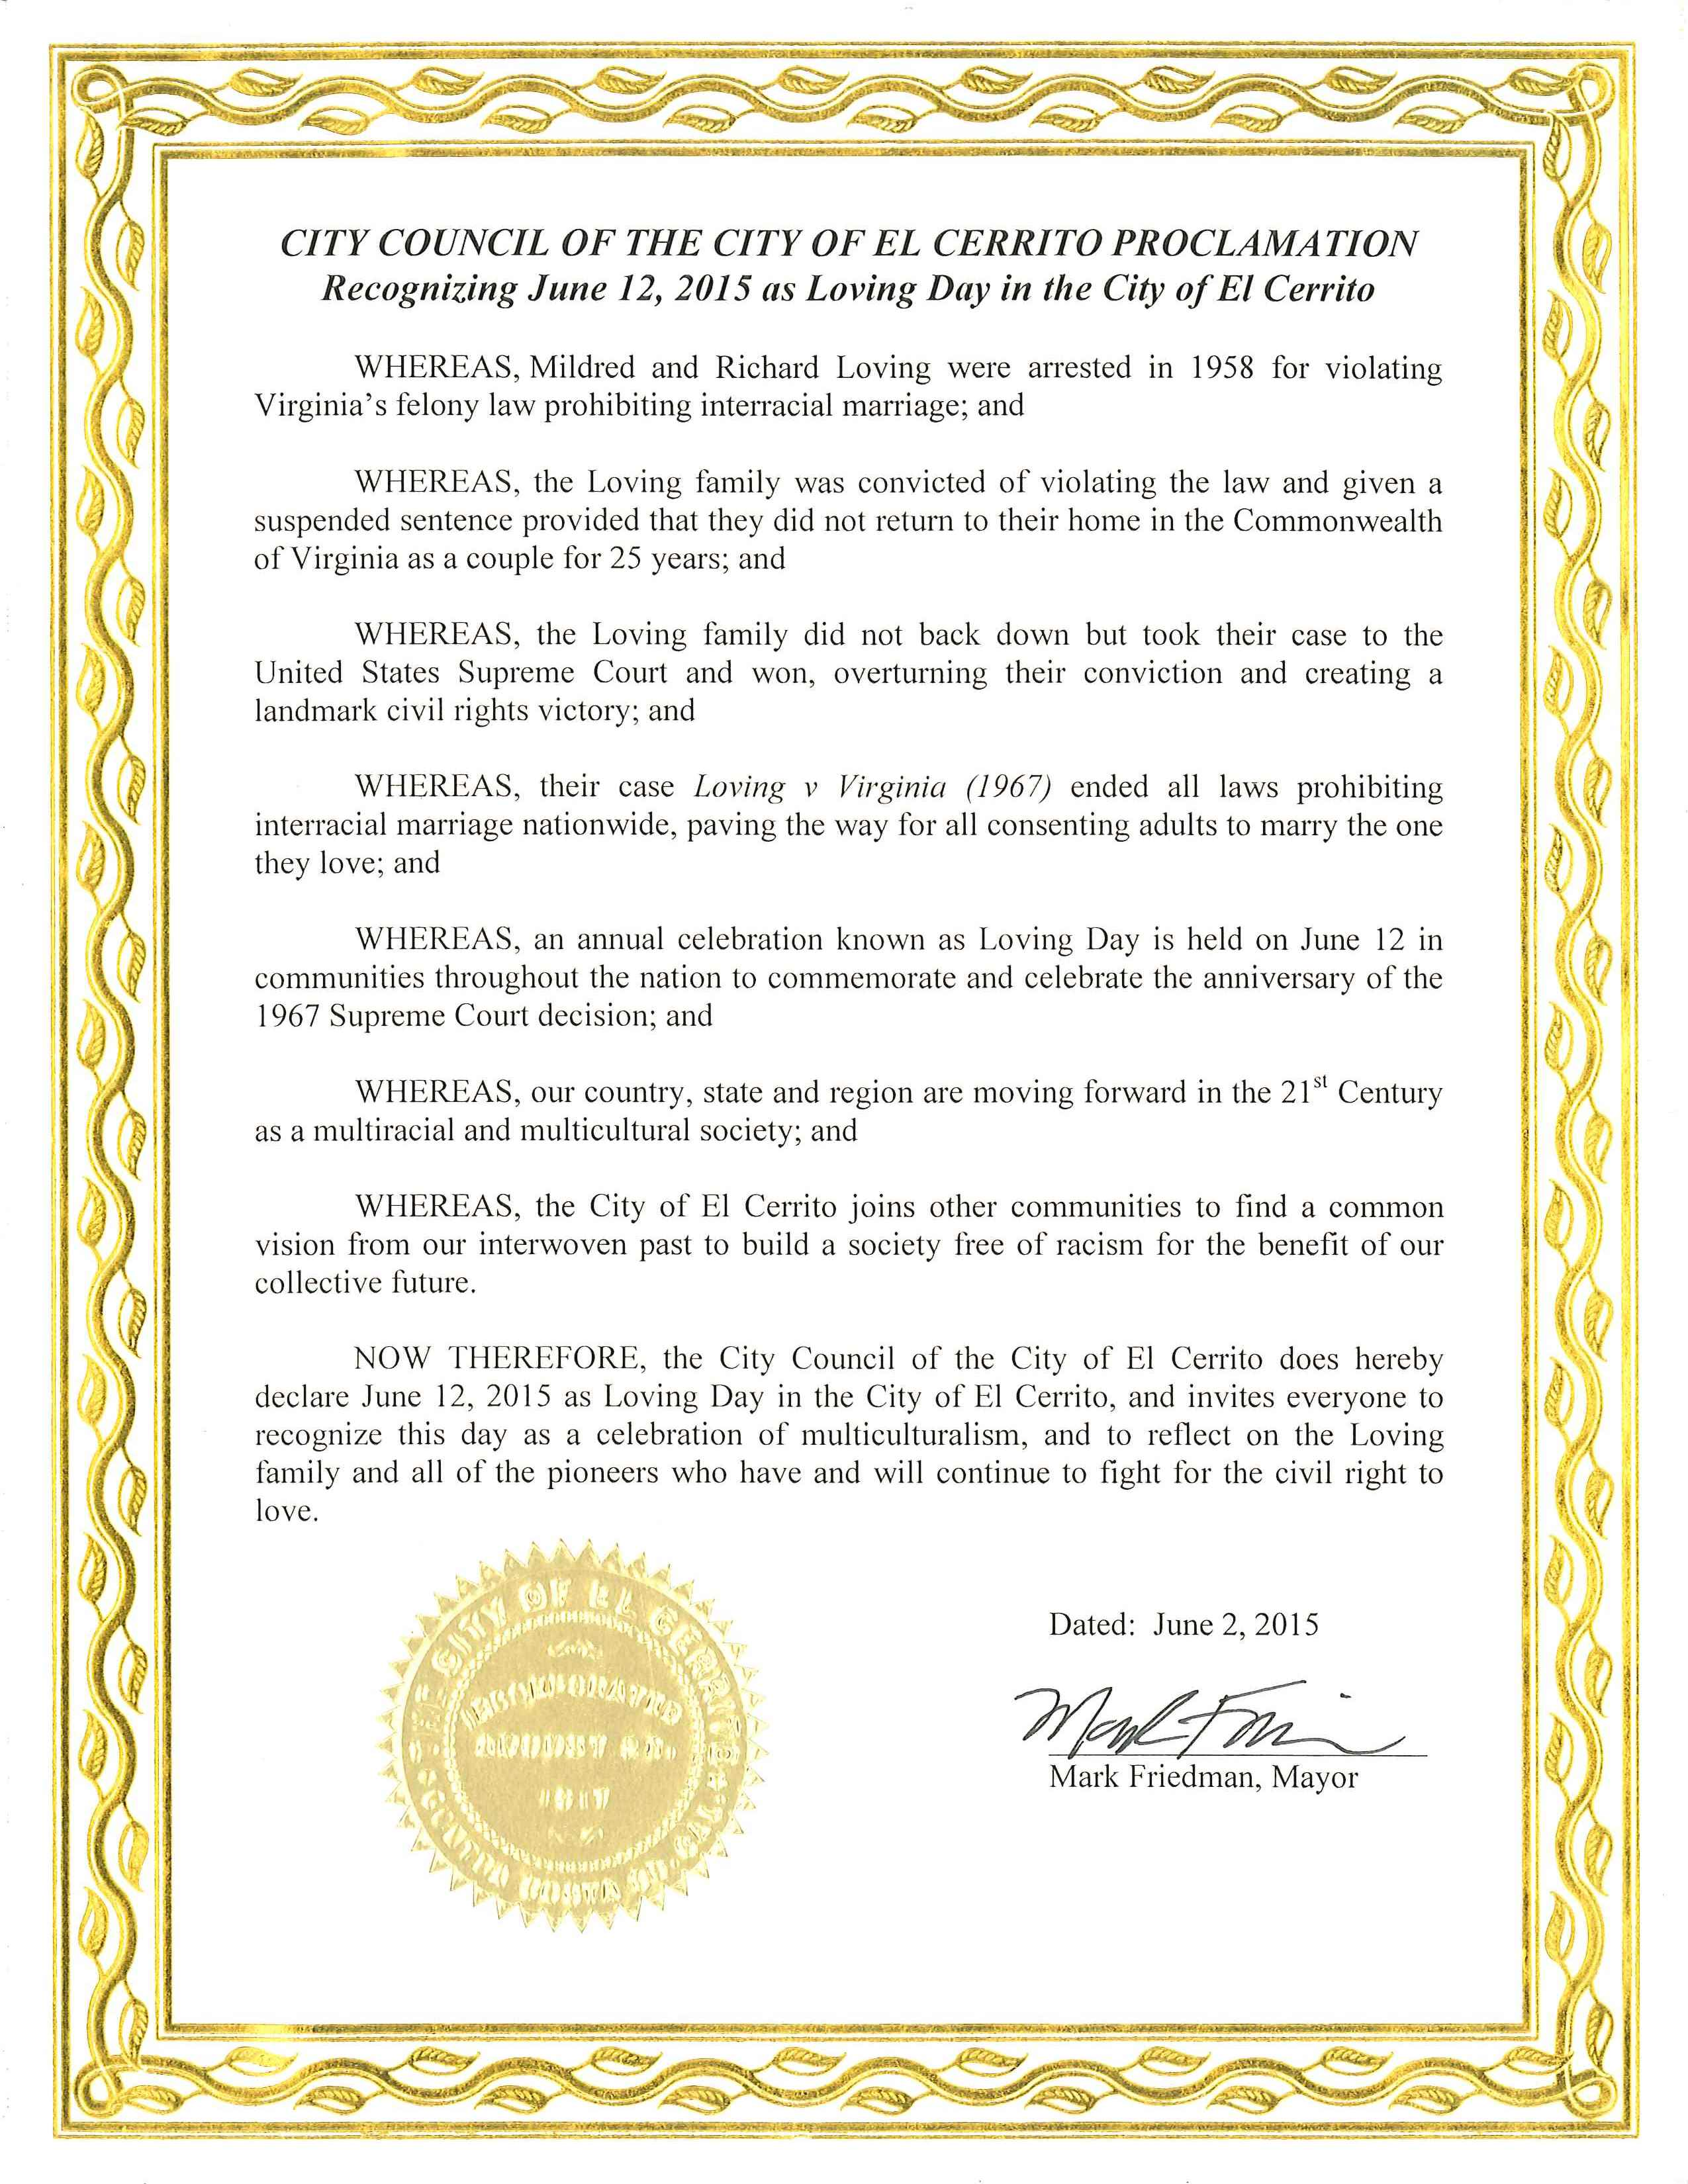 Loving Day 2015 Proclamation.jpg